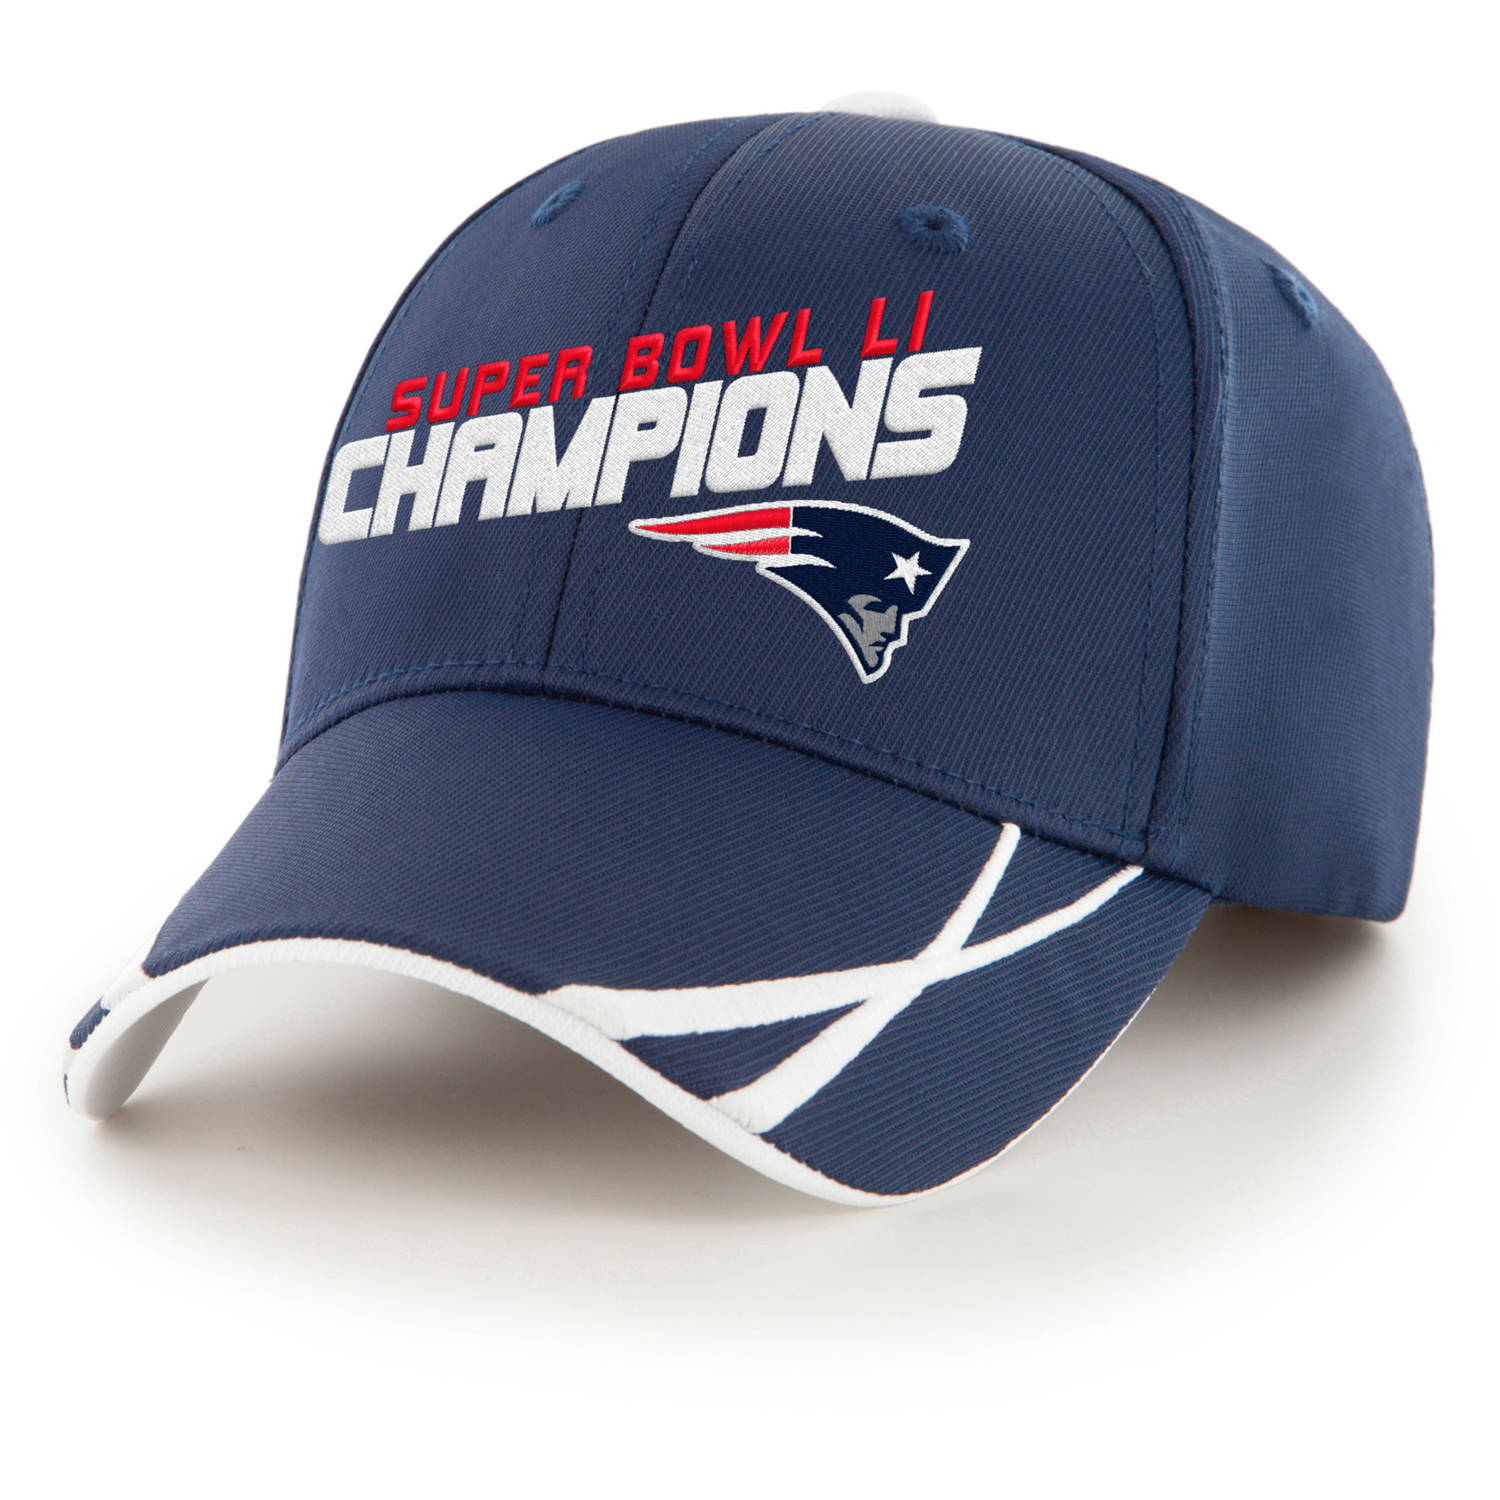 cc7343039 new arrivals nfl new england patriots knit hat 2015 1863e 54f0c